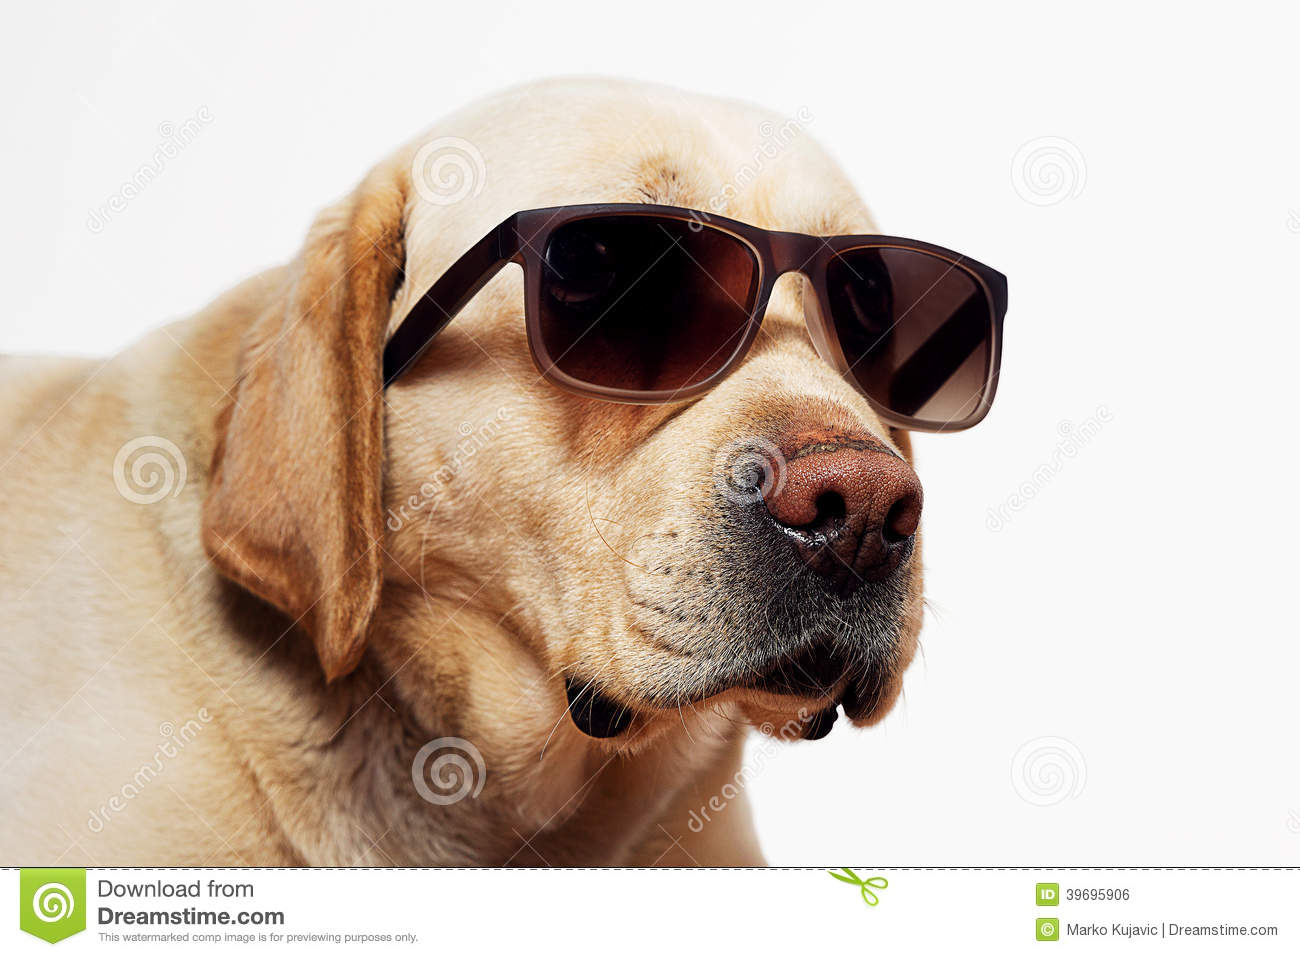 Pictures Of Sunglasses For Dogs